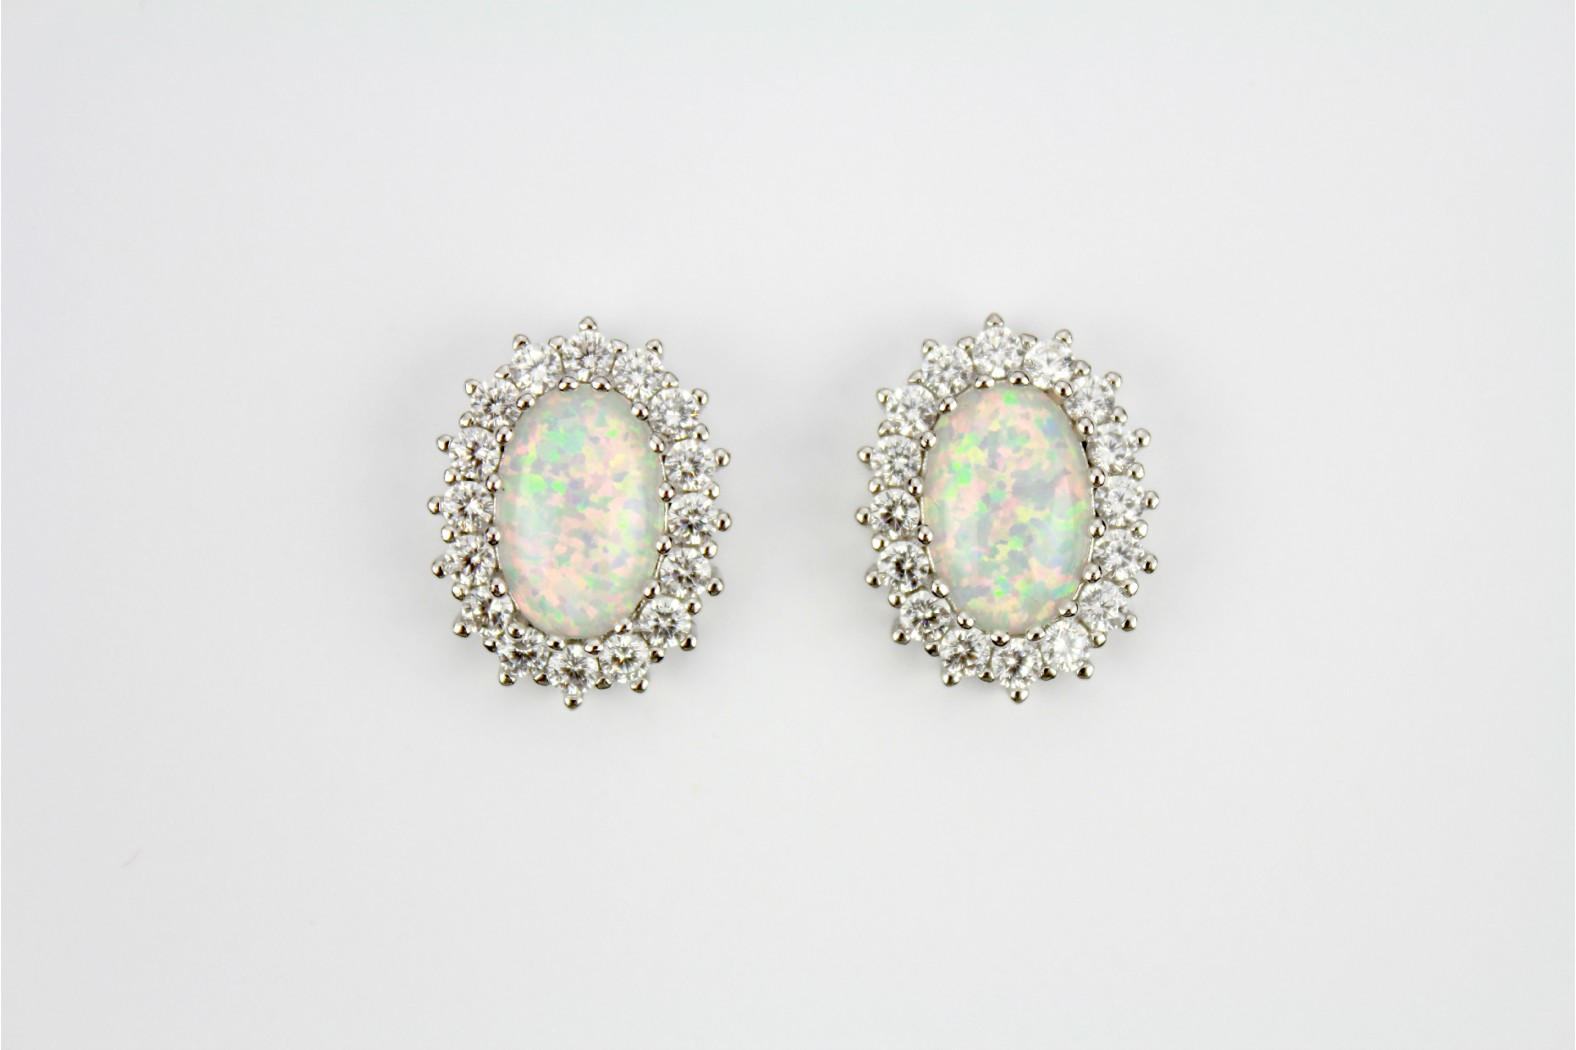 Stunning Large Created White Opal Fire stud earrings with CZ. Embellishments